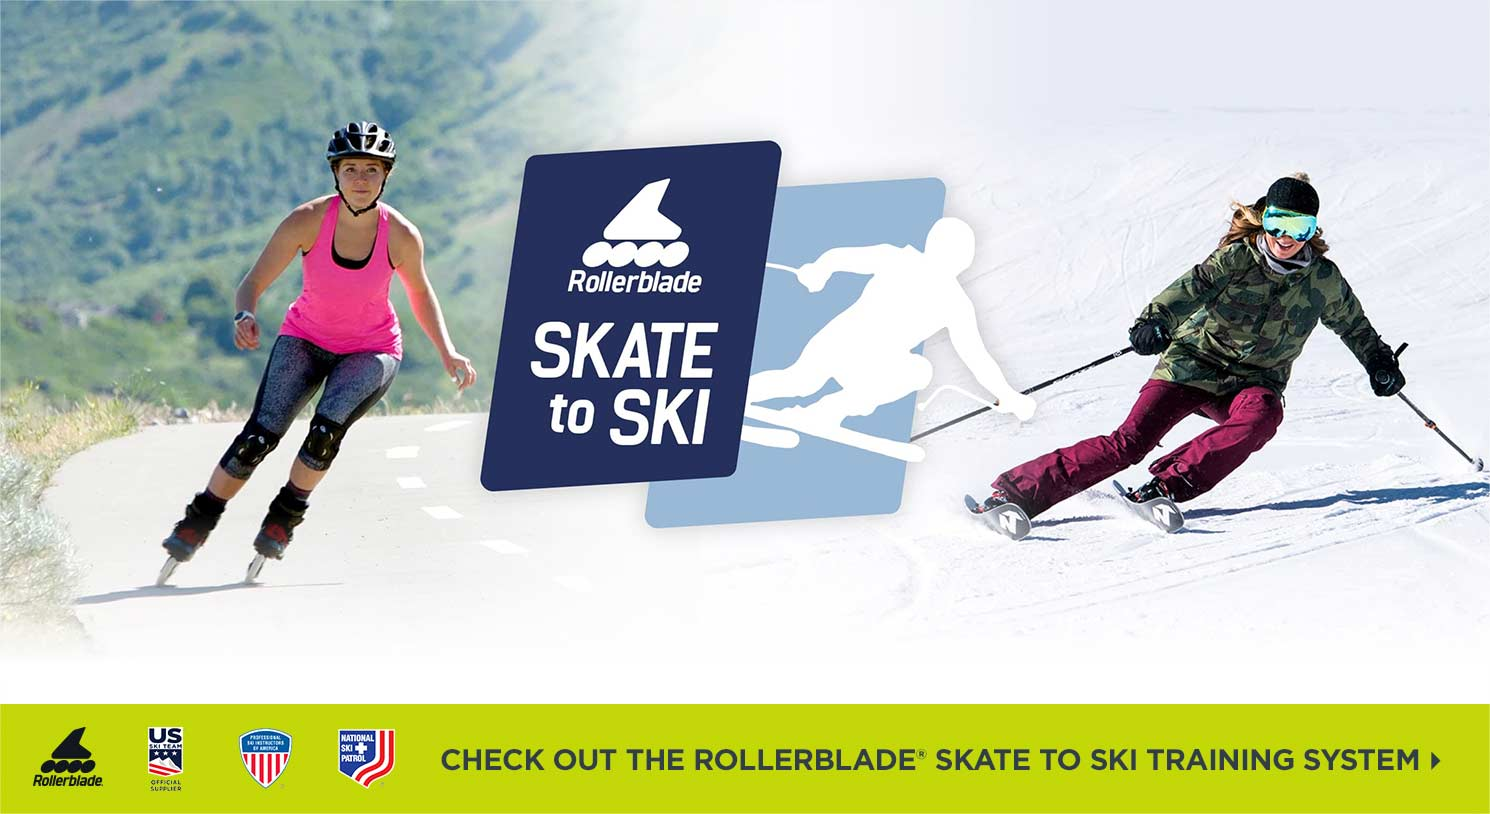 Introducing the Rollerblade Skate to Ski Training System